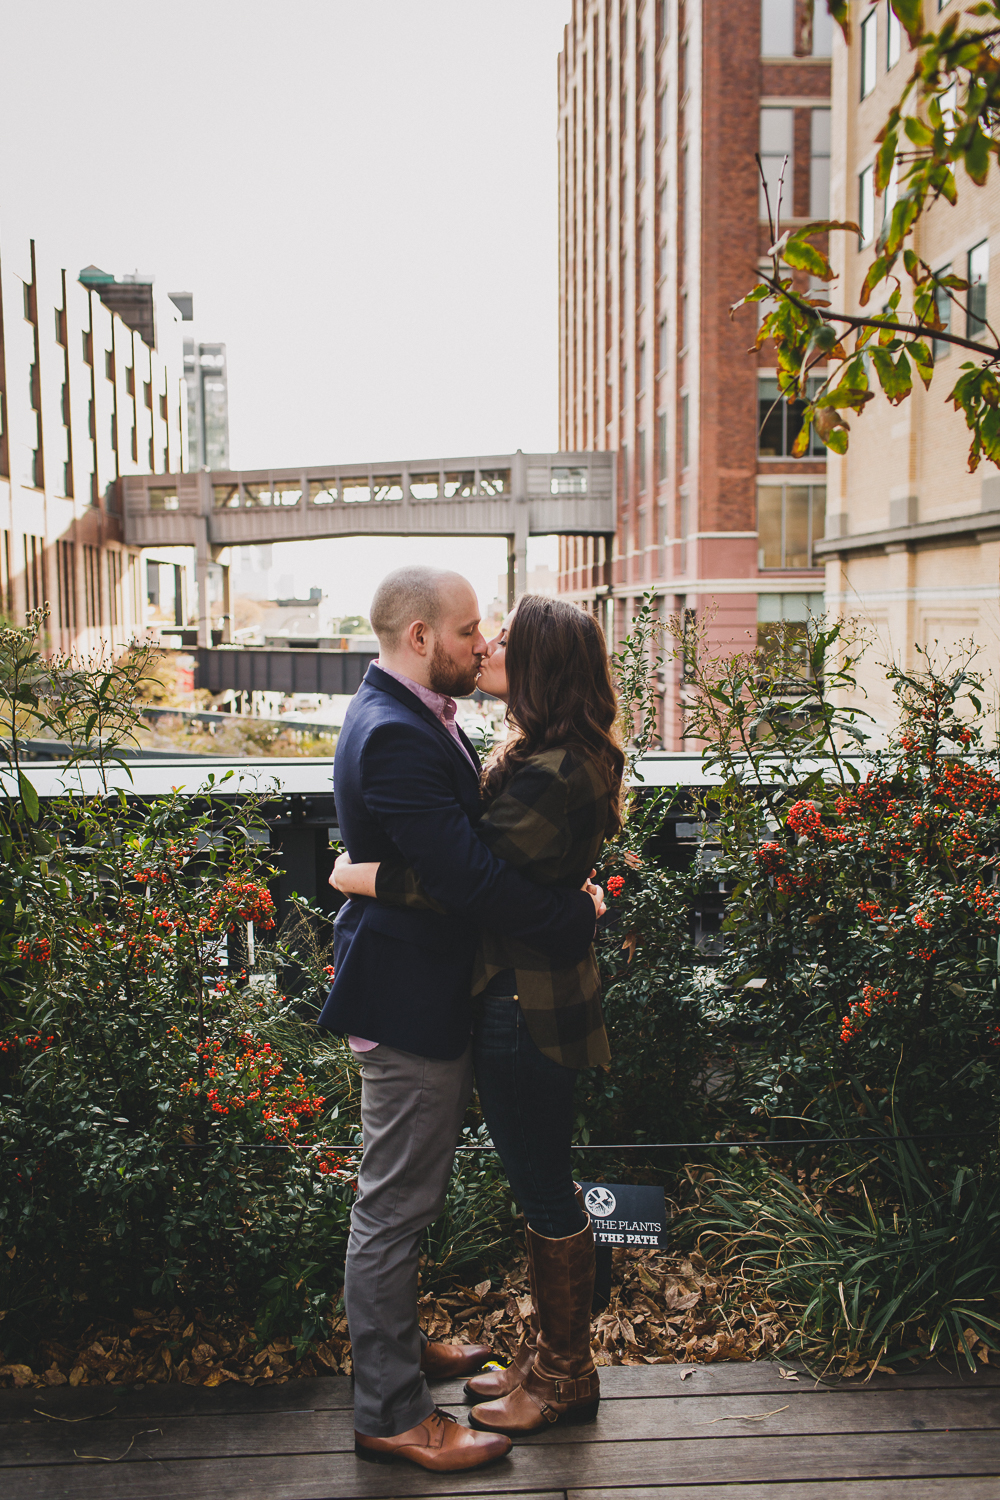 High-Line-Park-NYC-Engagement-Photos-Elvira-Kalviste-Photography-16.jpg